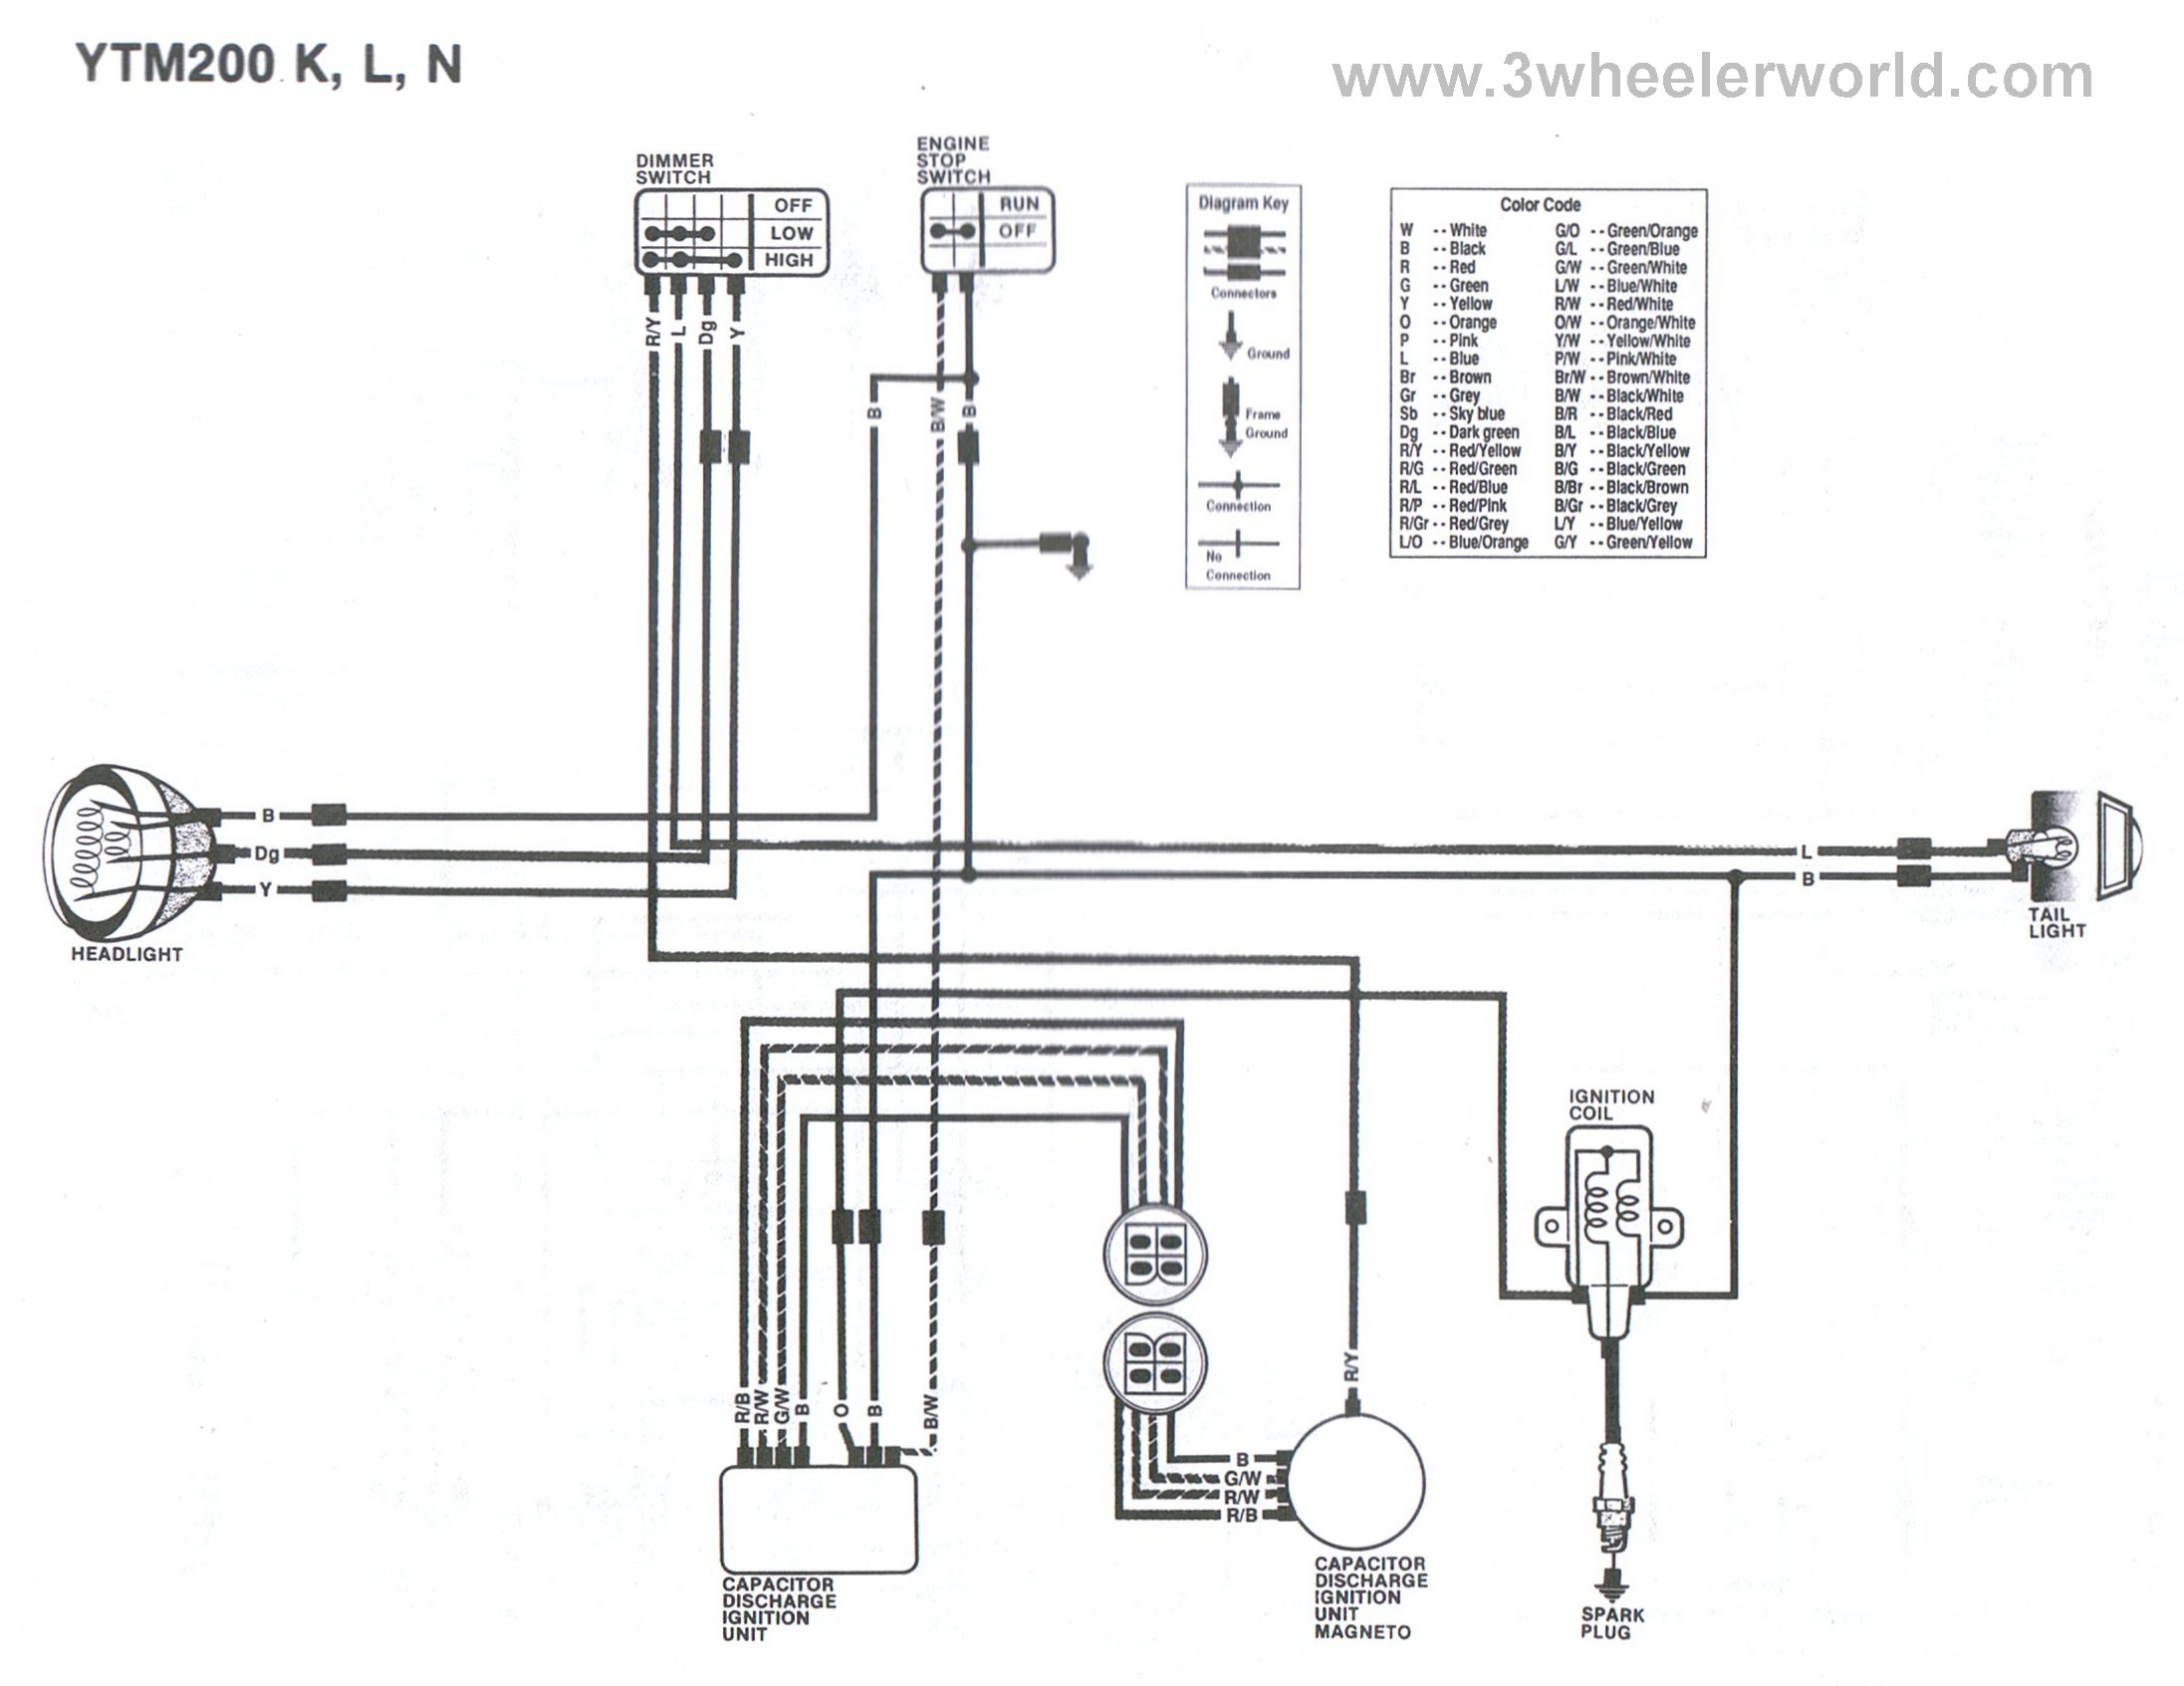 DIAGRAM] Yamaha Ttr 125 Ignition Wiring Diagram FULL Version HD Quality Wiring  Diagram - KITPROGSCHEMATIC8127.BEAUTYWELL.ITkitprogschematic8127.beautywell.it